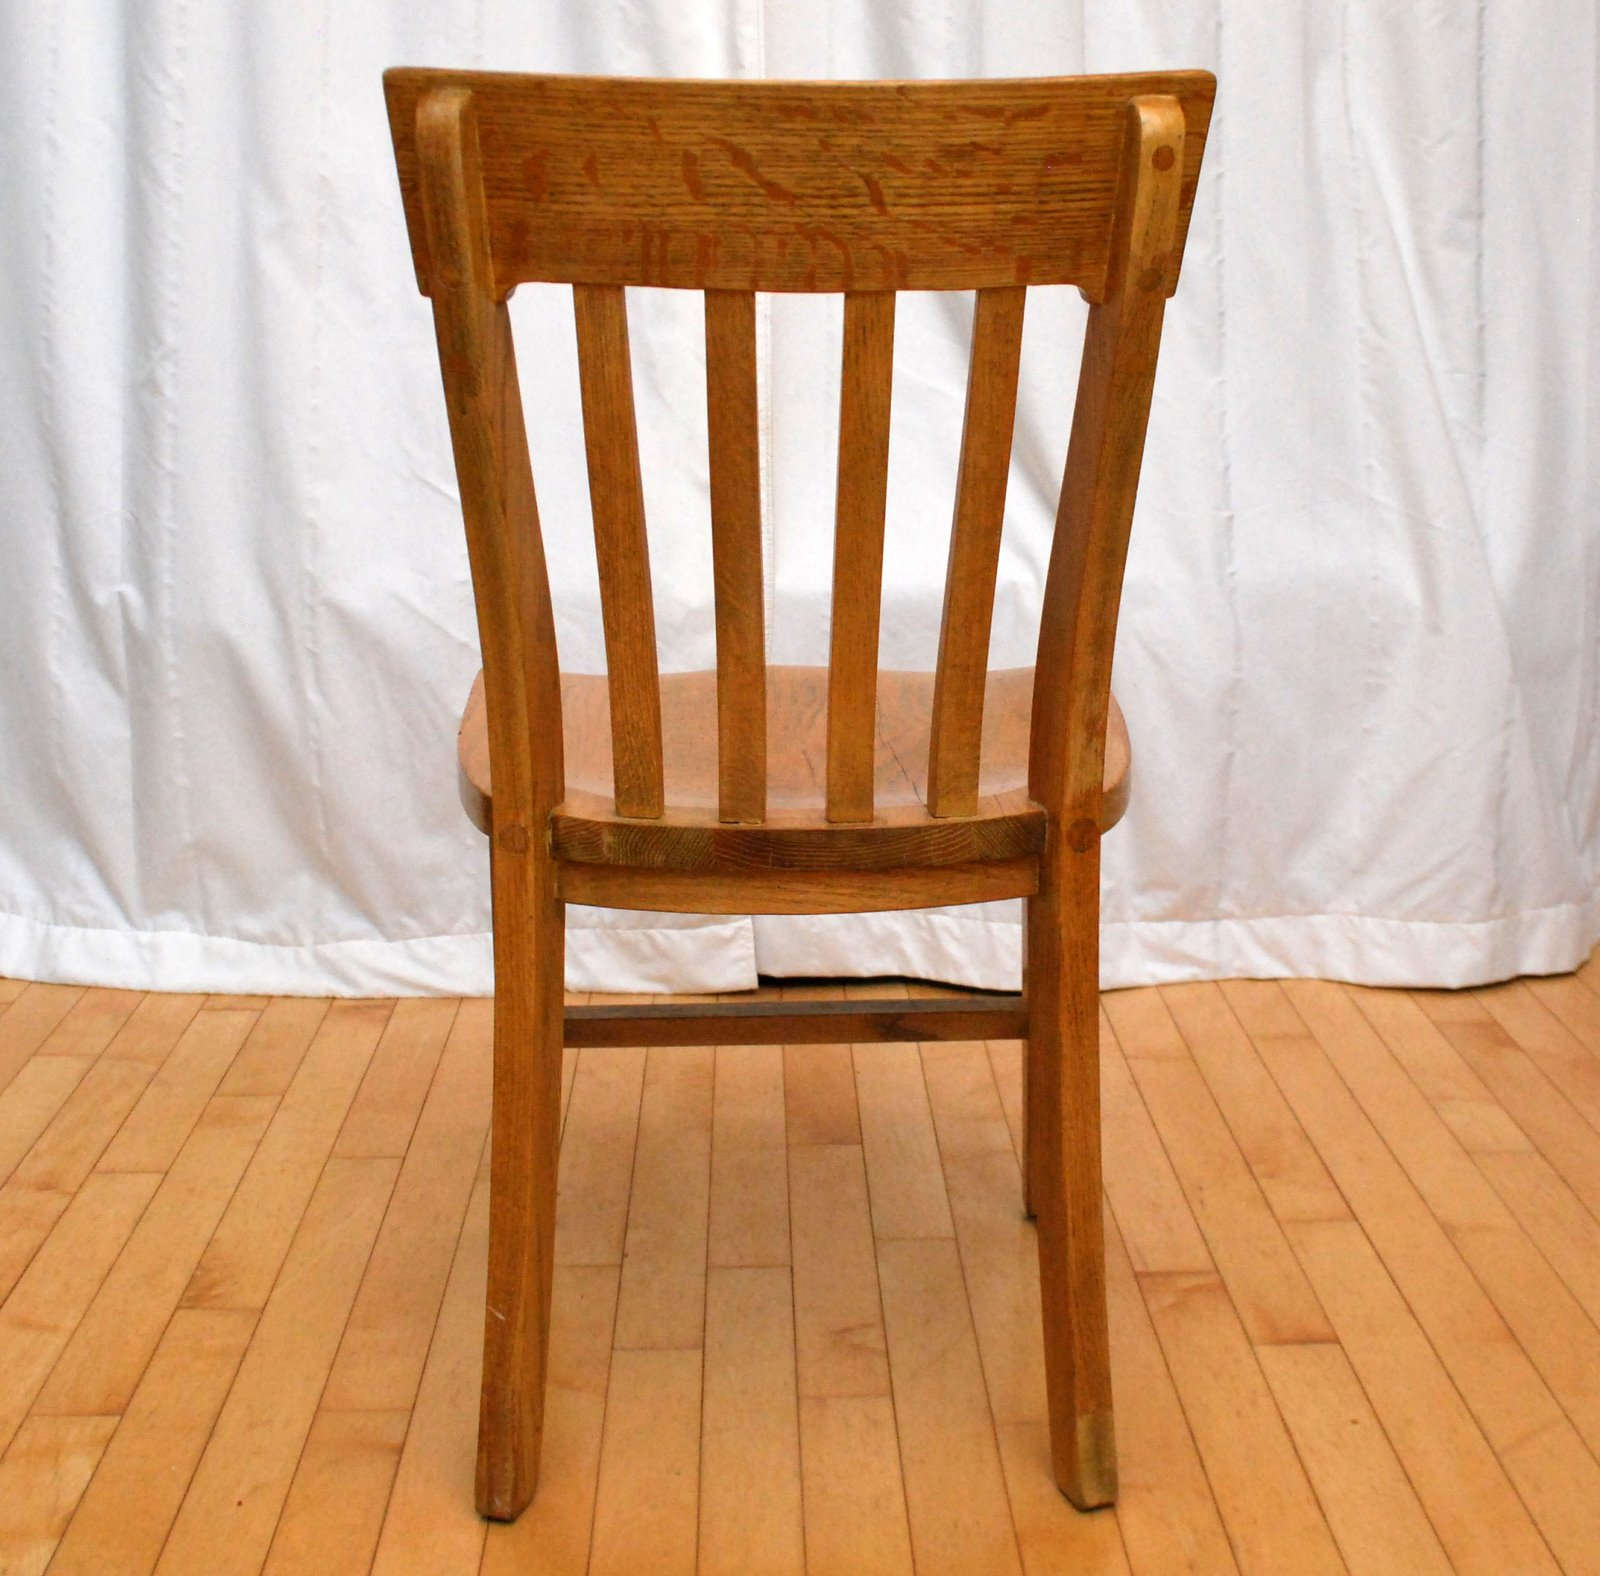 Krug Furniture Kitchener Tribute 20th Decor 1940s Oak Desk Chair